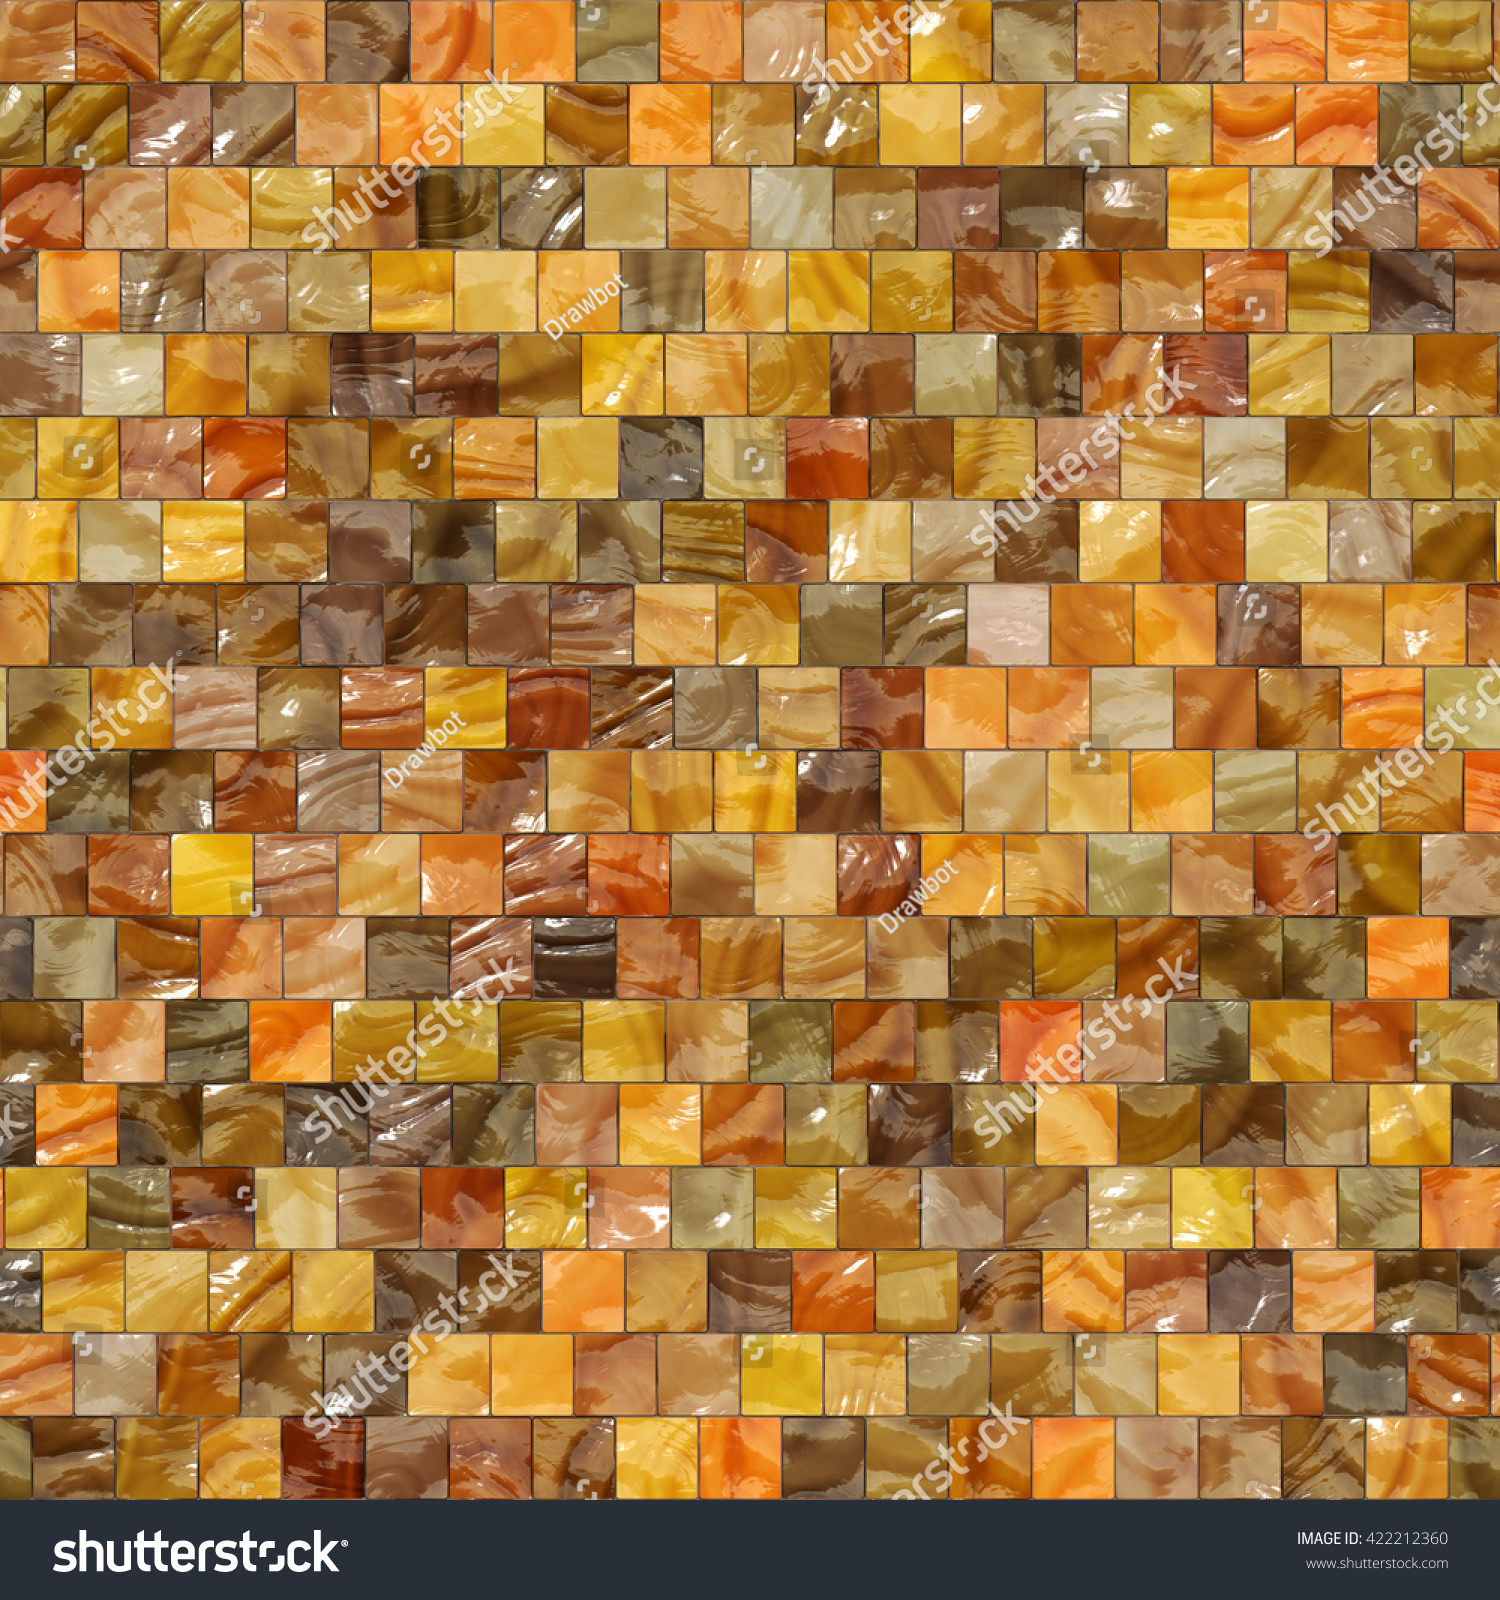 Decorative ceramic tiles texture background tiles stock decorative ceramic tiles texture background tiles seamless high resolution 3d cg rendering illustration dailygadgetfo Images